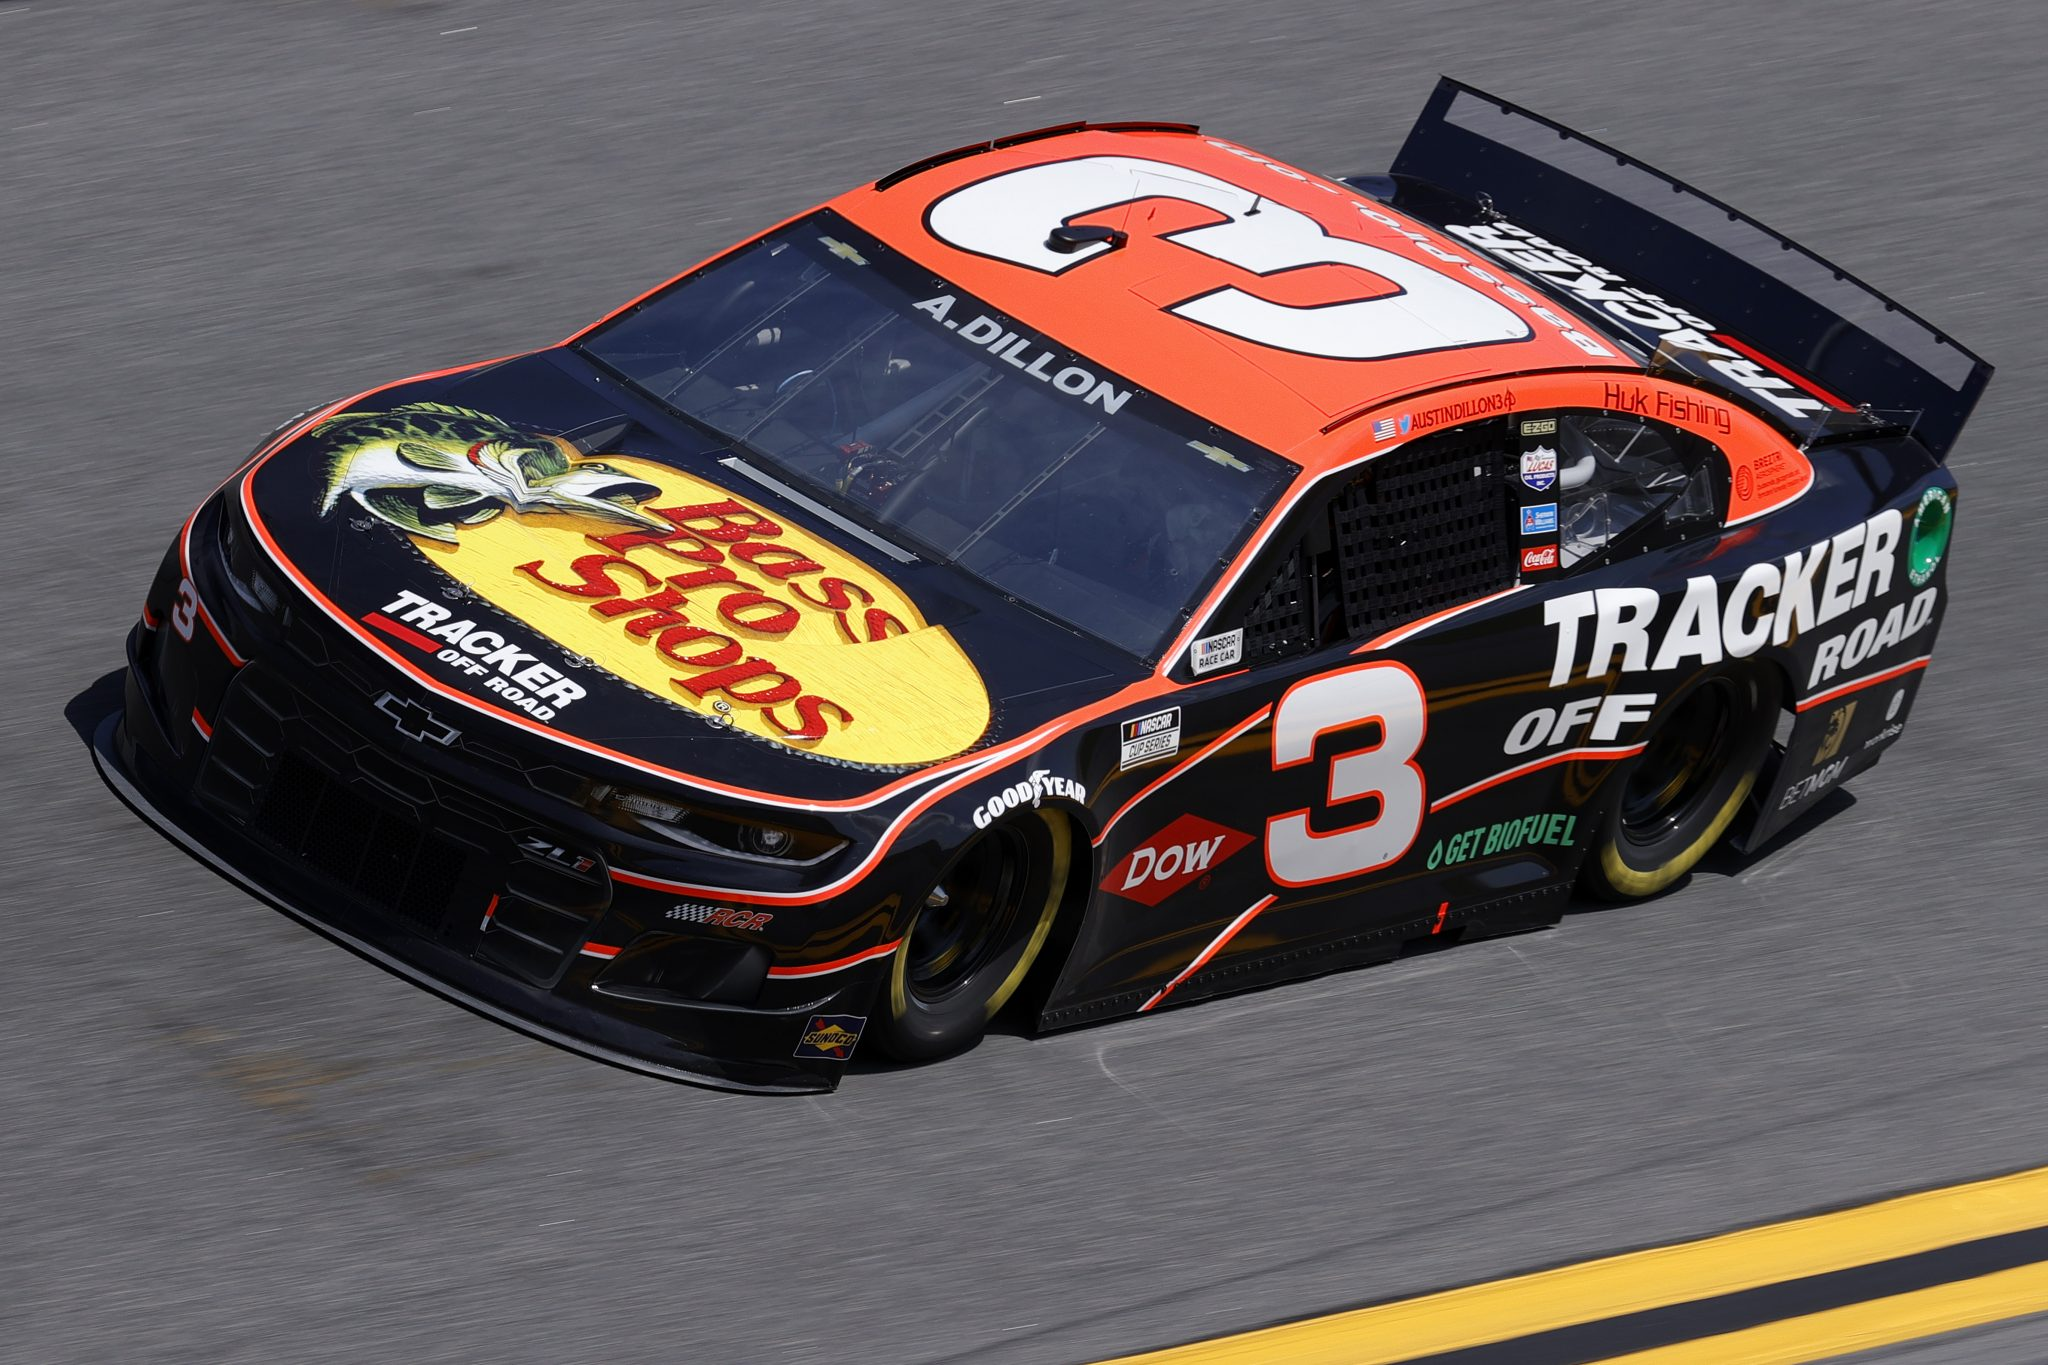 DAYTONA BEACH, FLORIDA - FEBRUARY 10: Austin Dillon, driver of the #3 Bass Pro Shops Chevrolet, drives during practice for the NASCAR Cup Series 63rd Annual Daytona 500 at Daytona International Speedway on February 10, 2021 in Daytona Beach, Florida. (Photo by Jared C. Tilton/Getty Images) | Getty Images